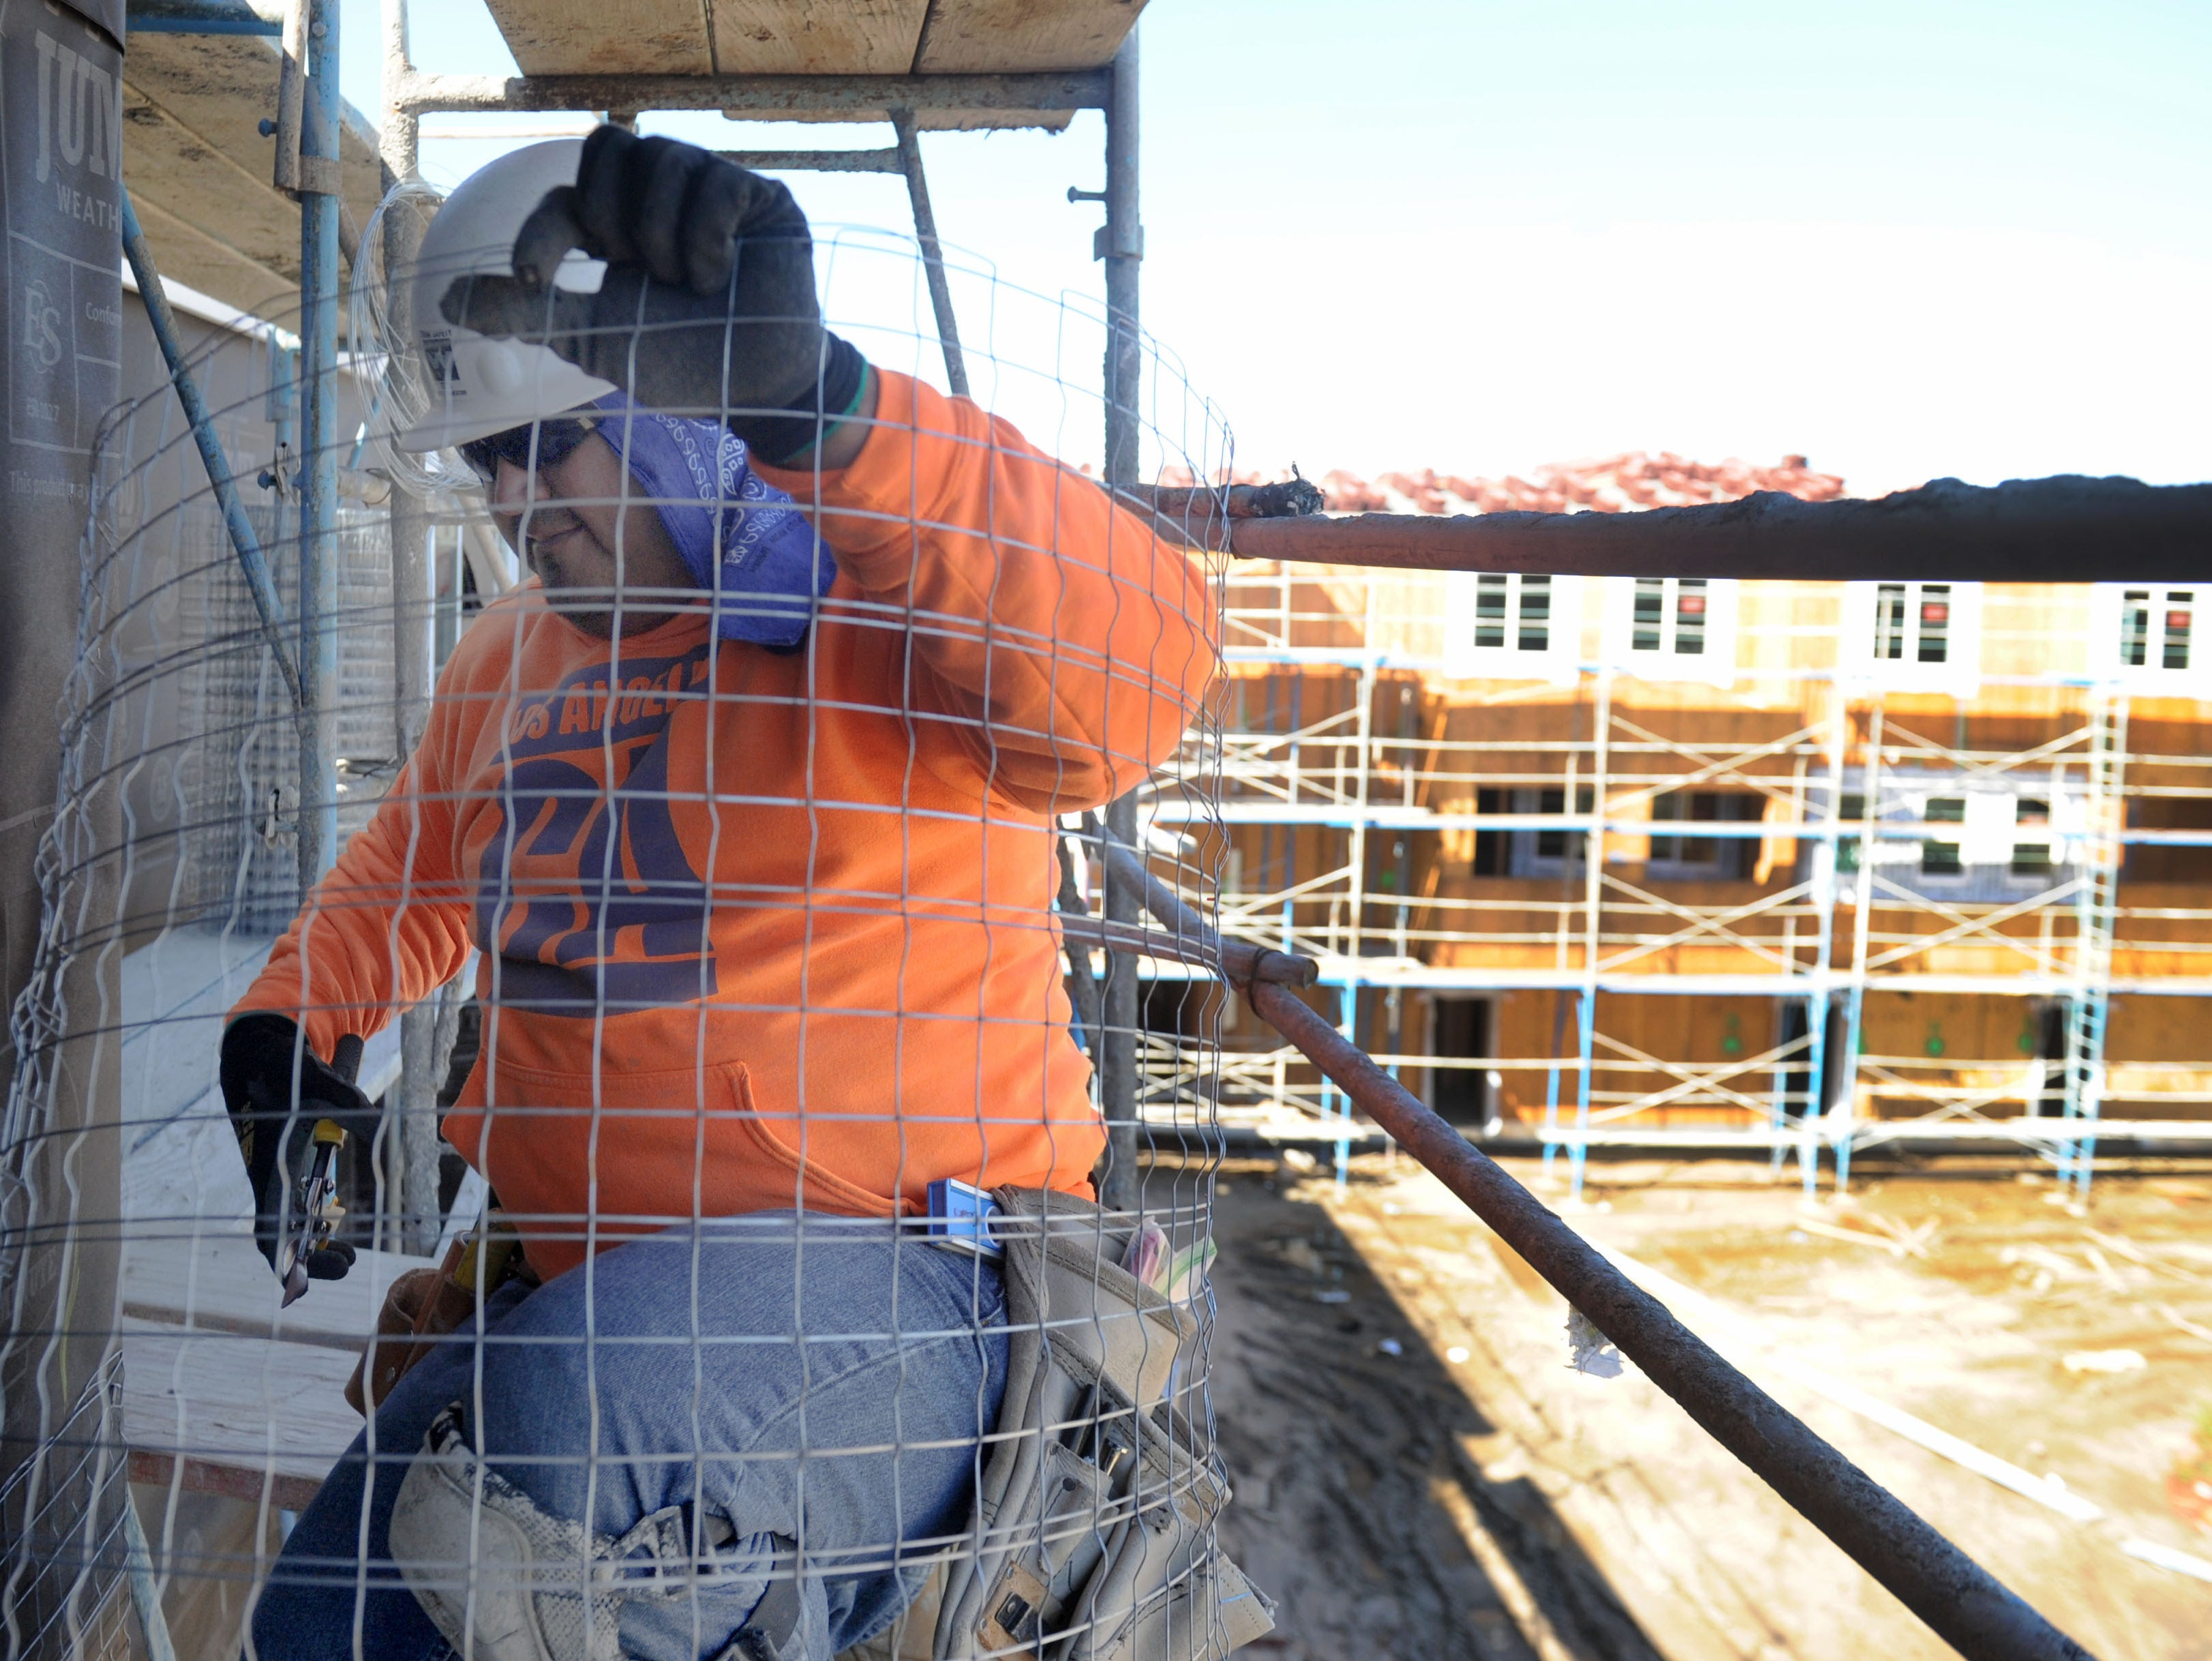 Edwin Ramos cuts stucco support wire at the all-veterans Ormond Beach housing complex being built by Many Mansions in Oxnard. The project is scheduled to be complete in August.